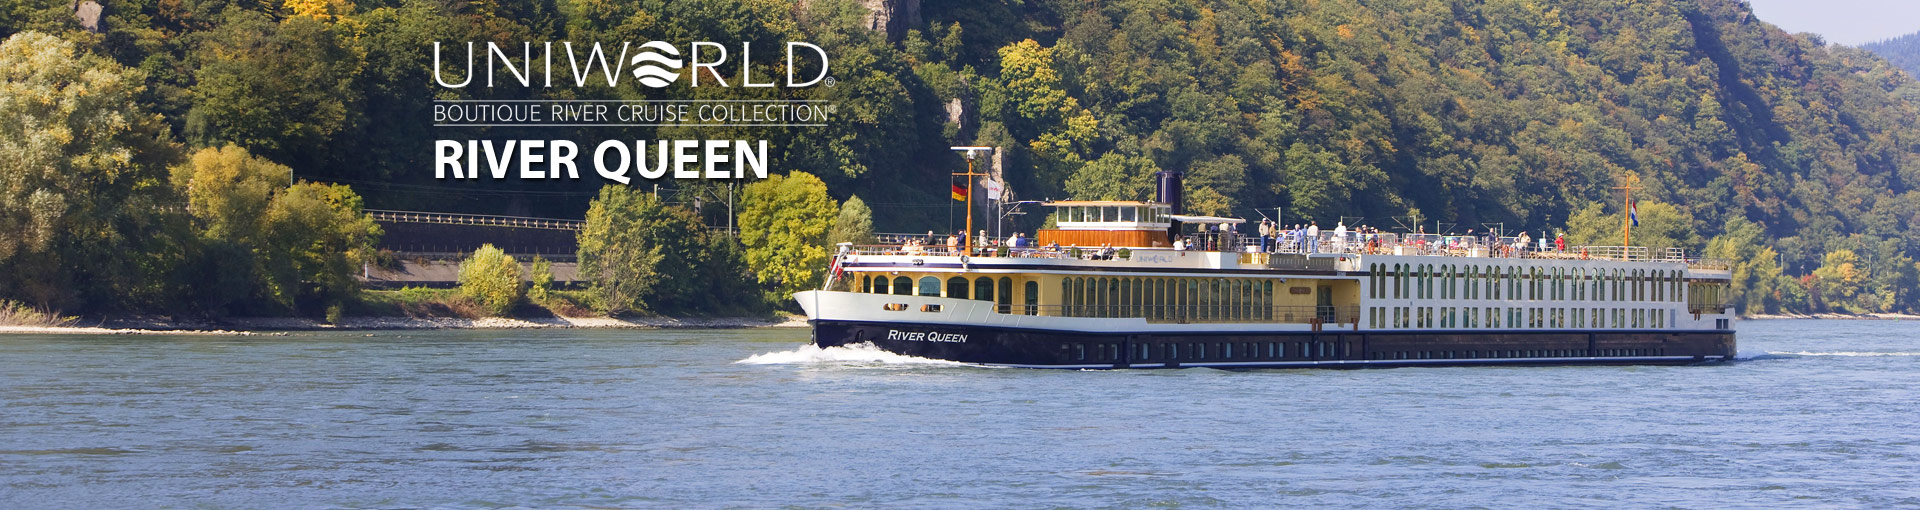 Uniworld River Cruises River Queen river ship